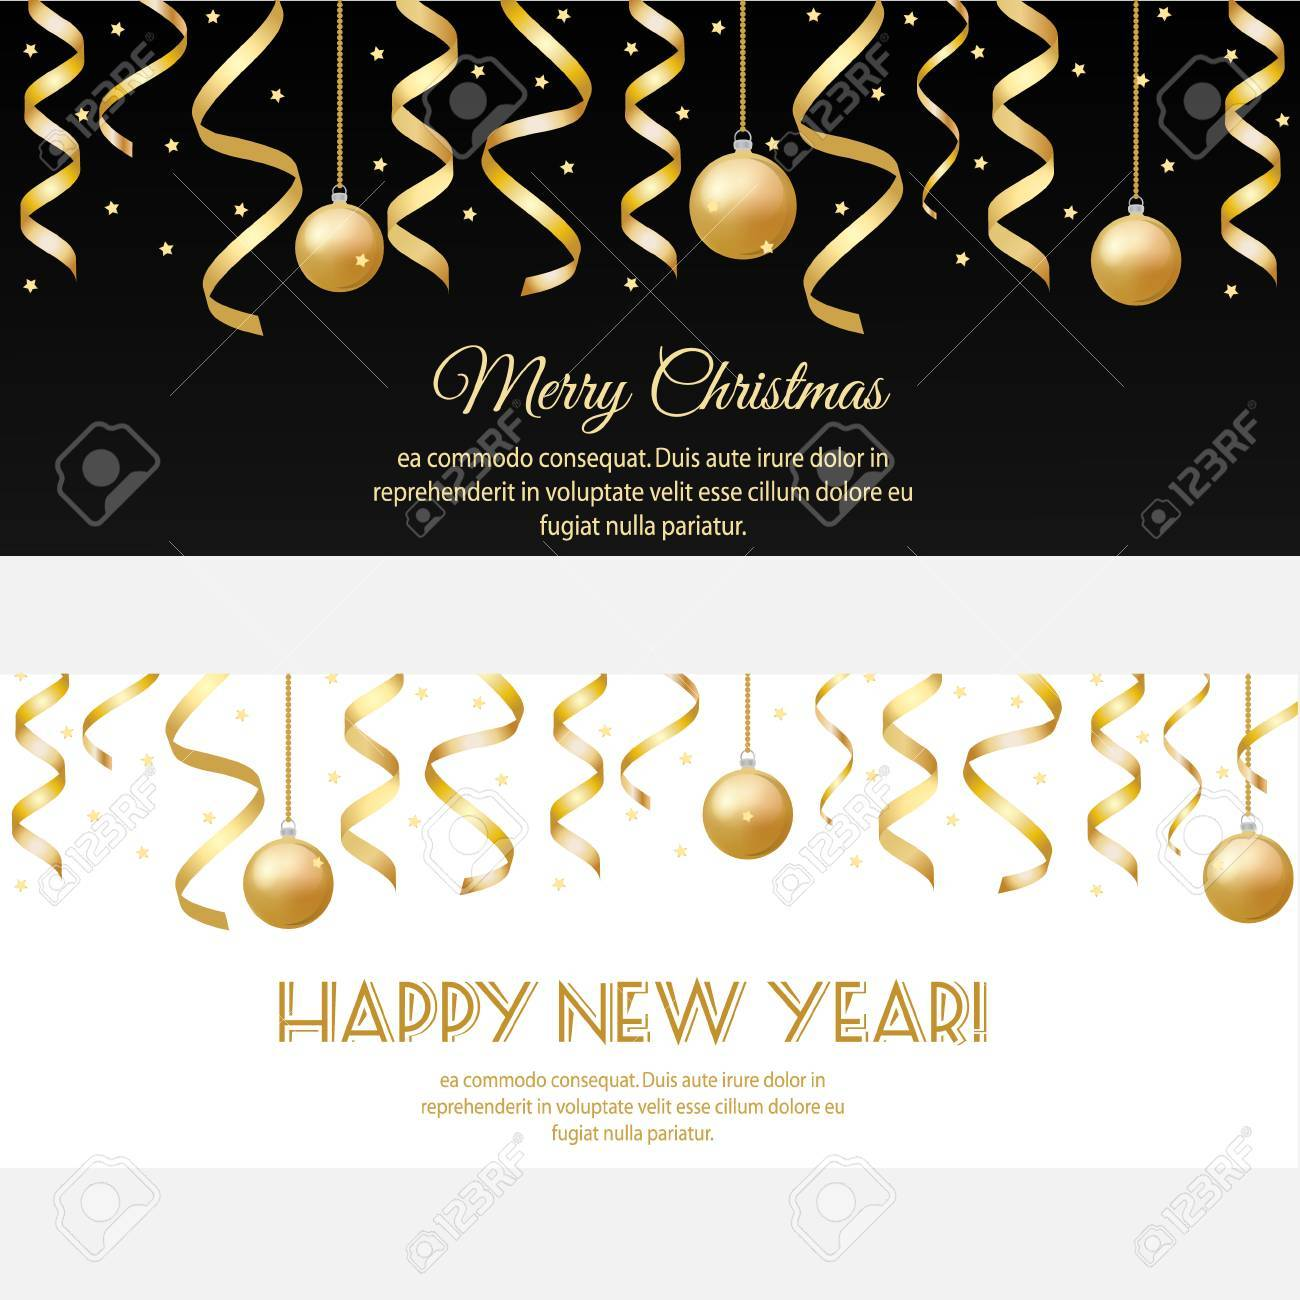 merry christmas happy new year horizontal banners with golden streamers and baubles design template